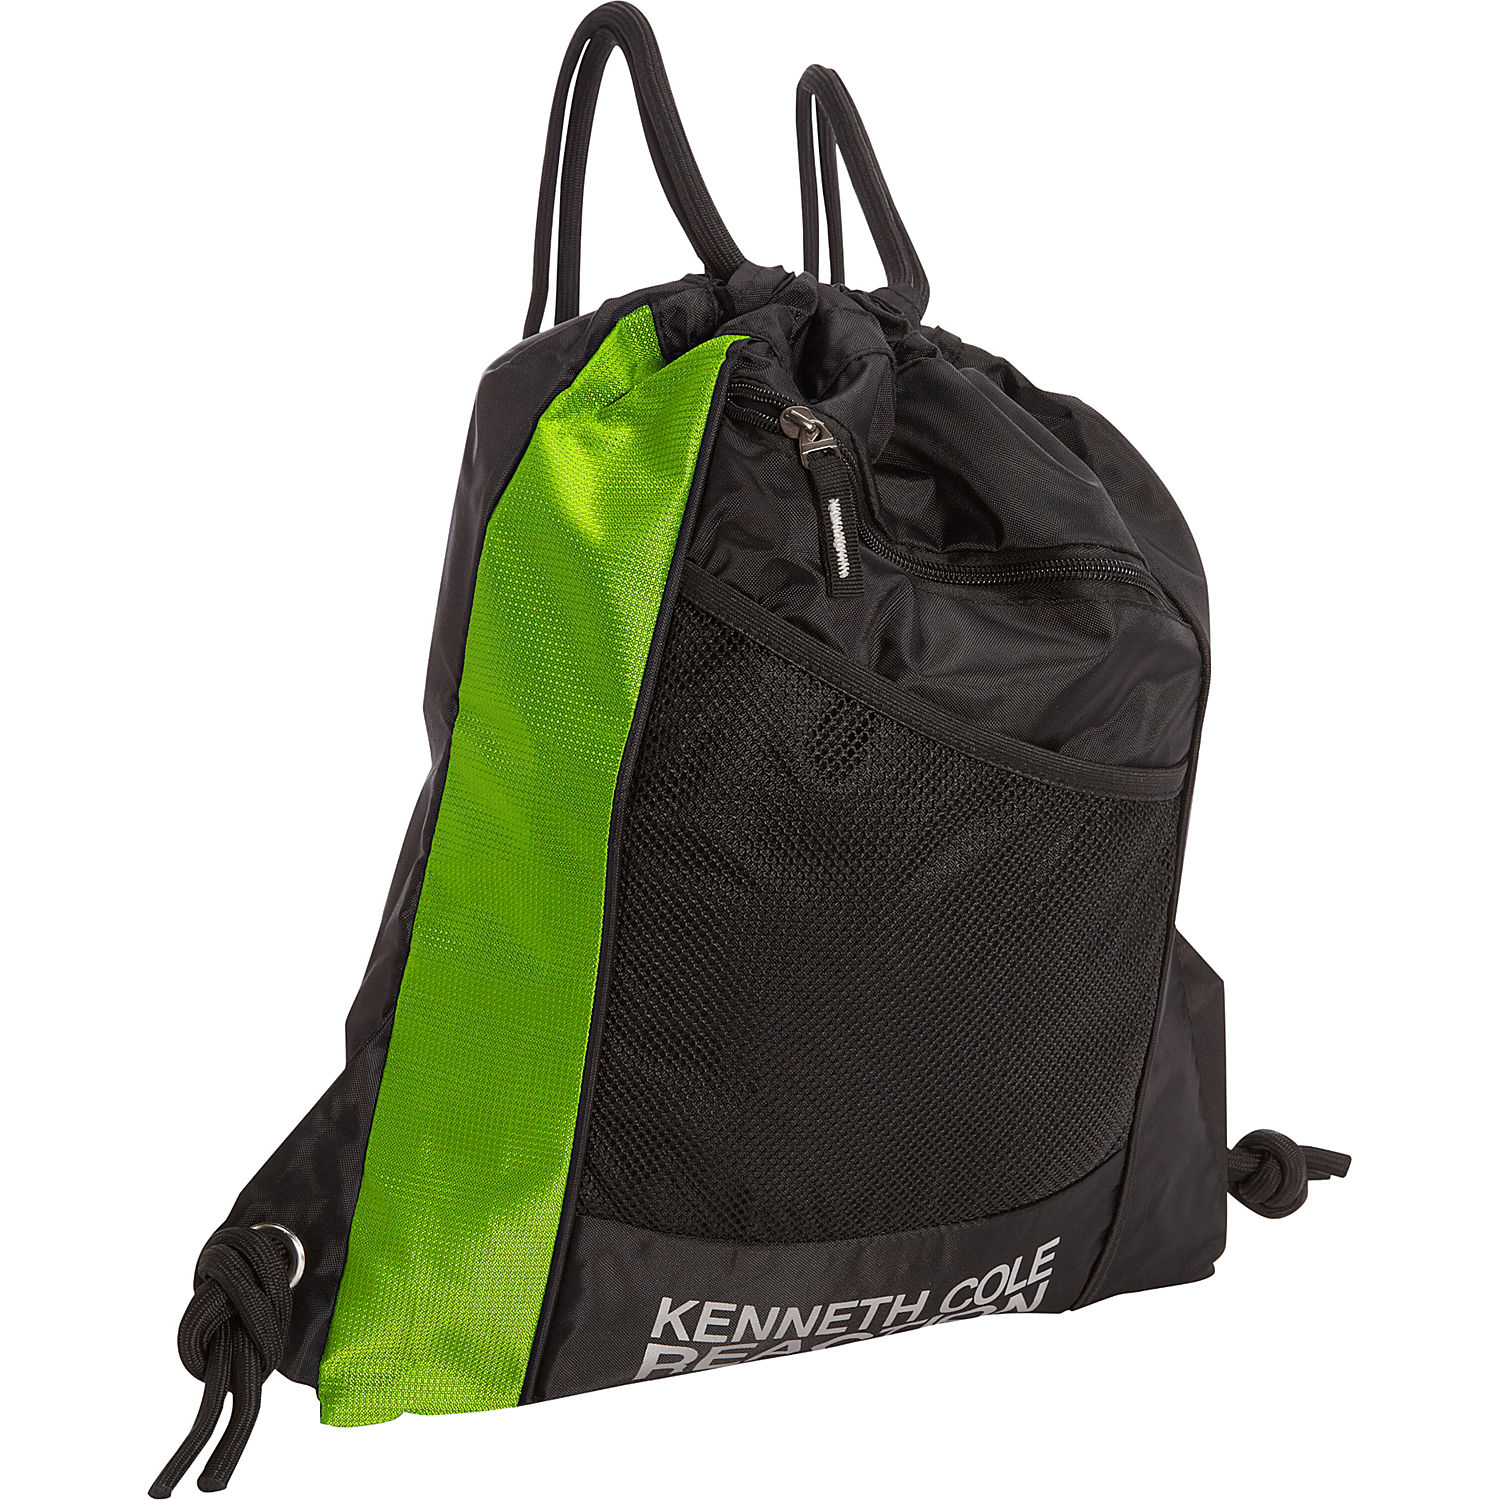 Kenneth Cole Reaction Cynch Drawstring Backpack